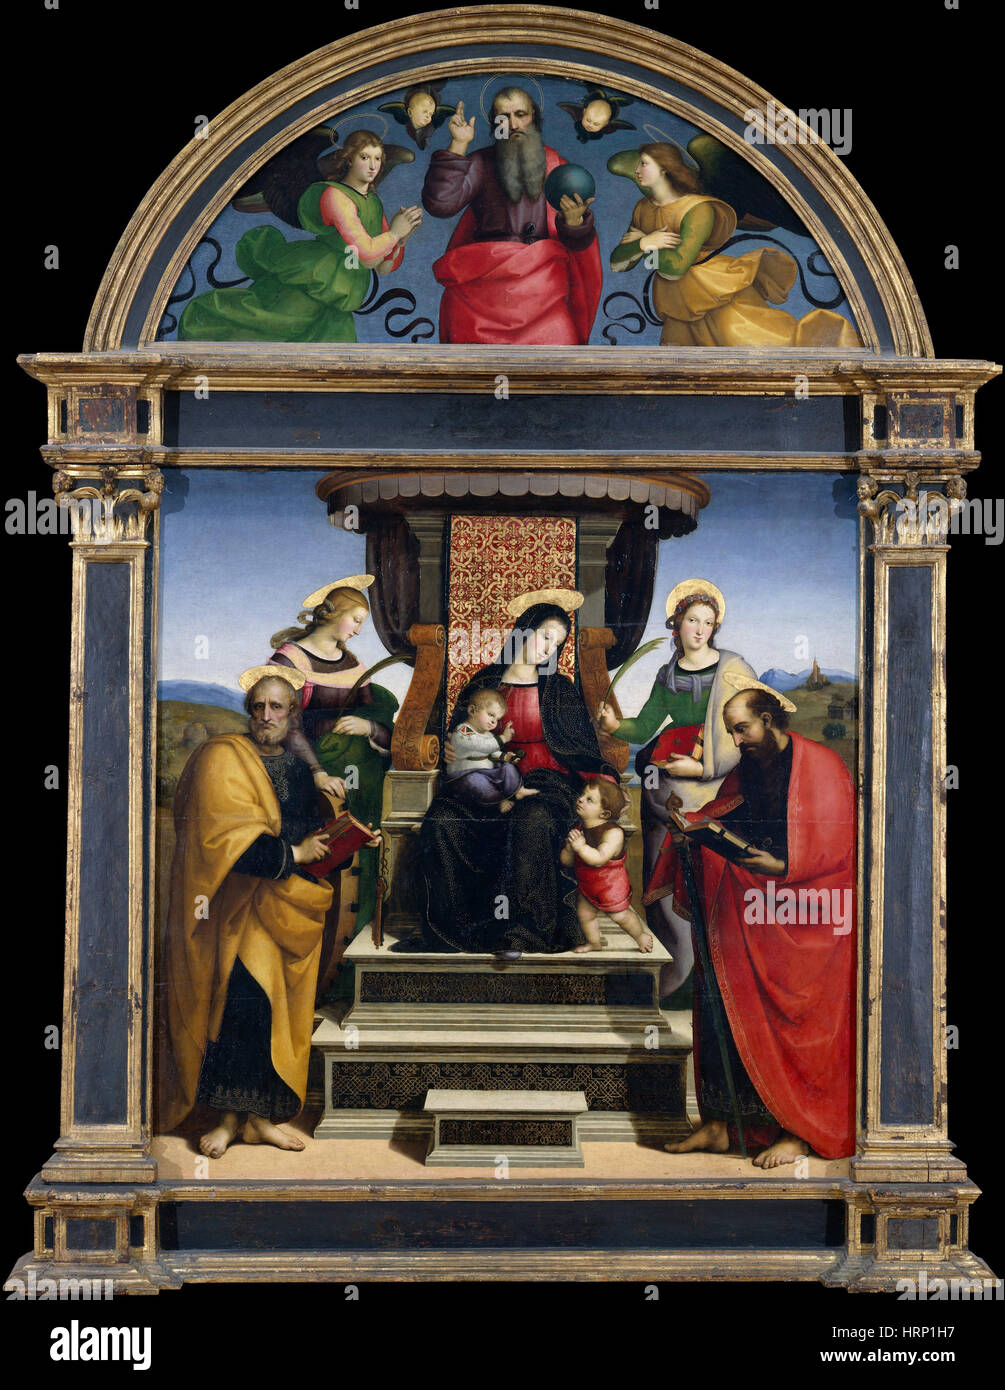 Madonna and Child with Saints, Raphael - Stock Image